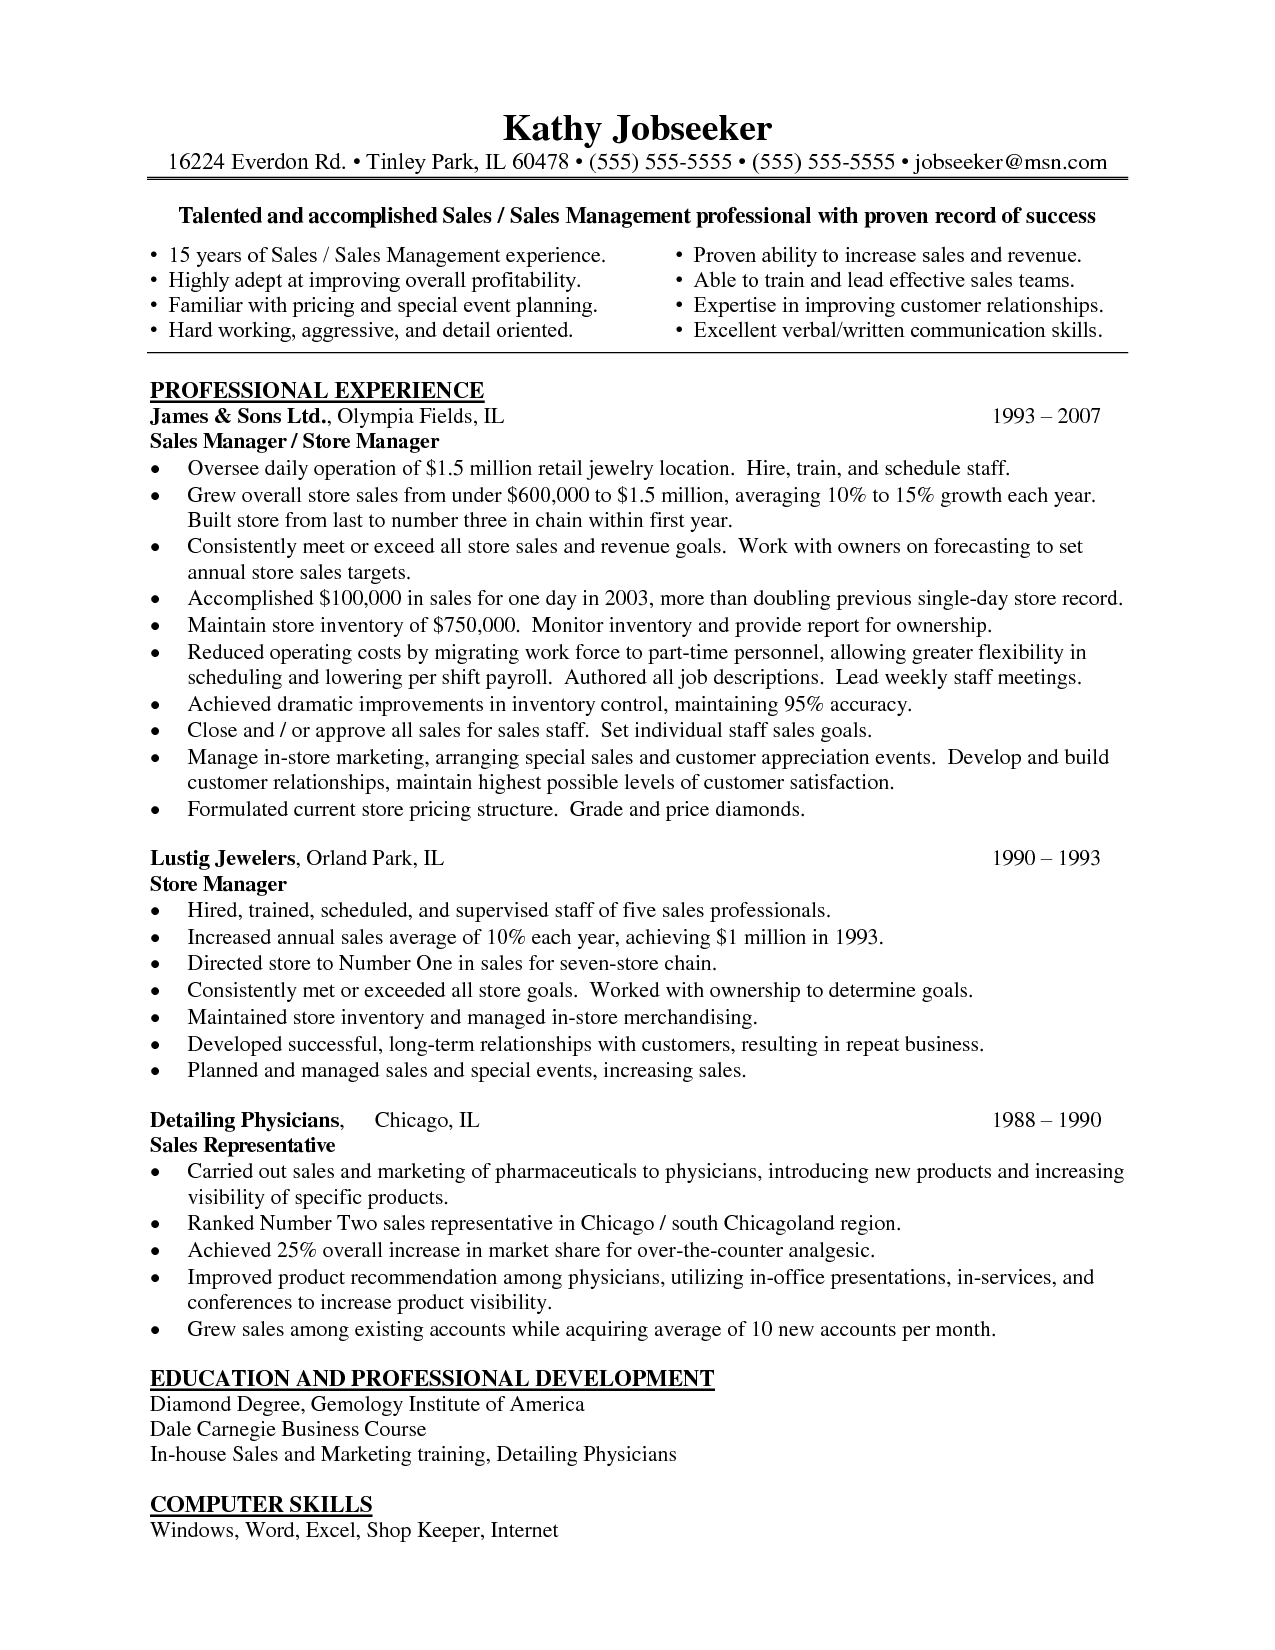 Resume Examples For Retail Store Manager | Sample Cover Letter For Retail  Management Job 4  Resume Examples Management